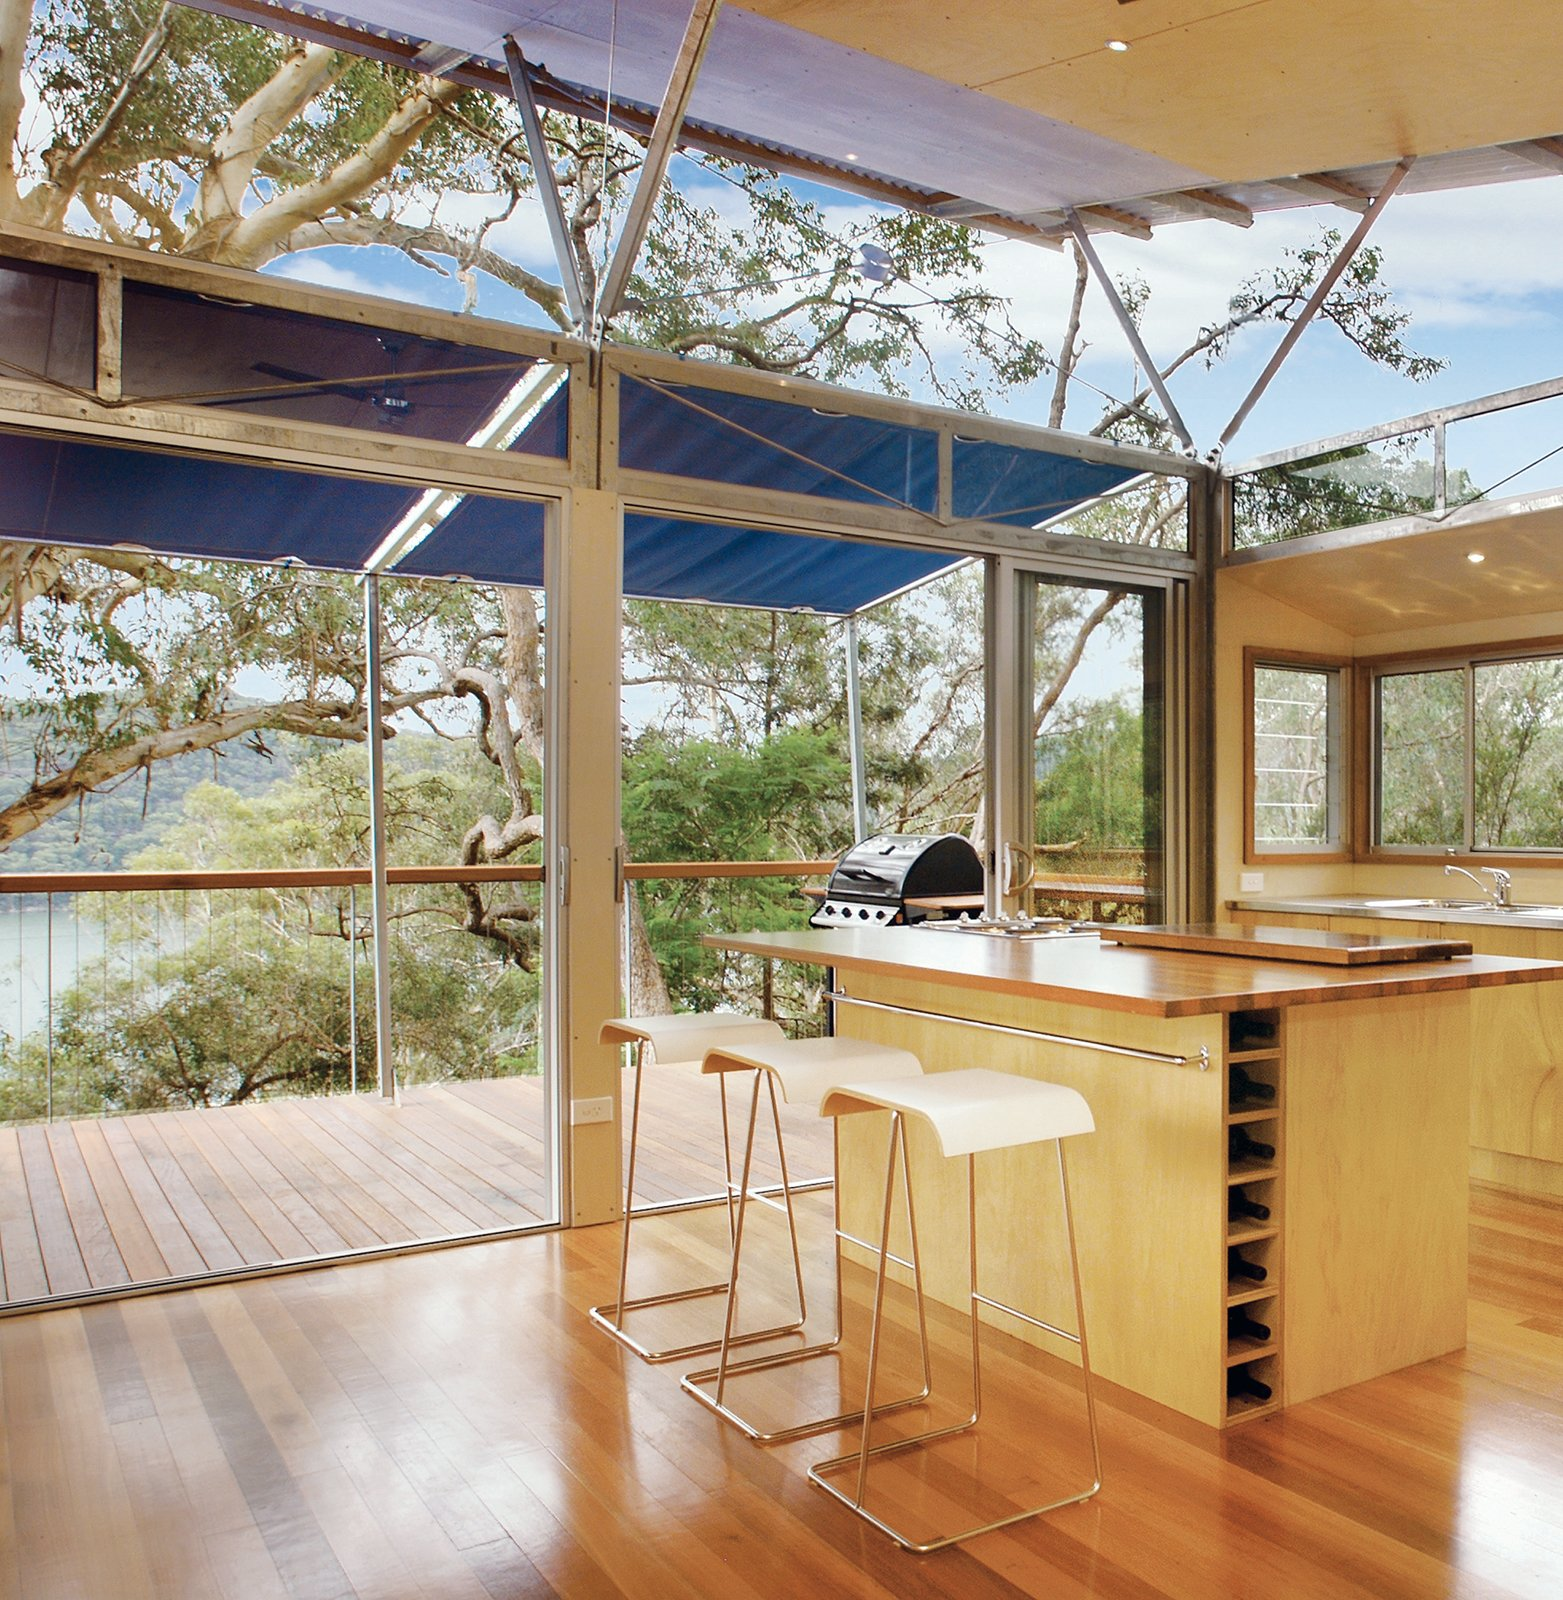 The kitchen has a view to the Hawkesbury River.  Photo 3 of 4 in Outback Staked House